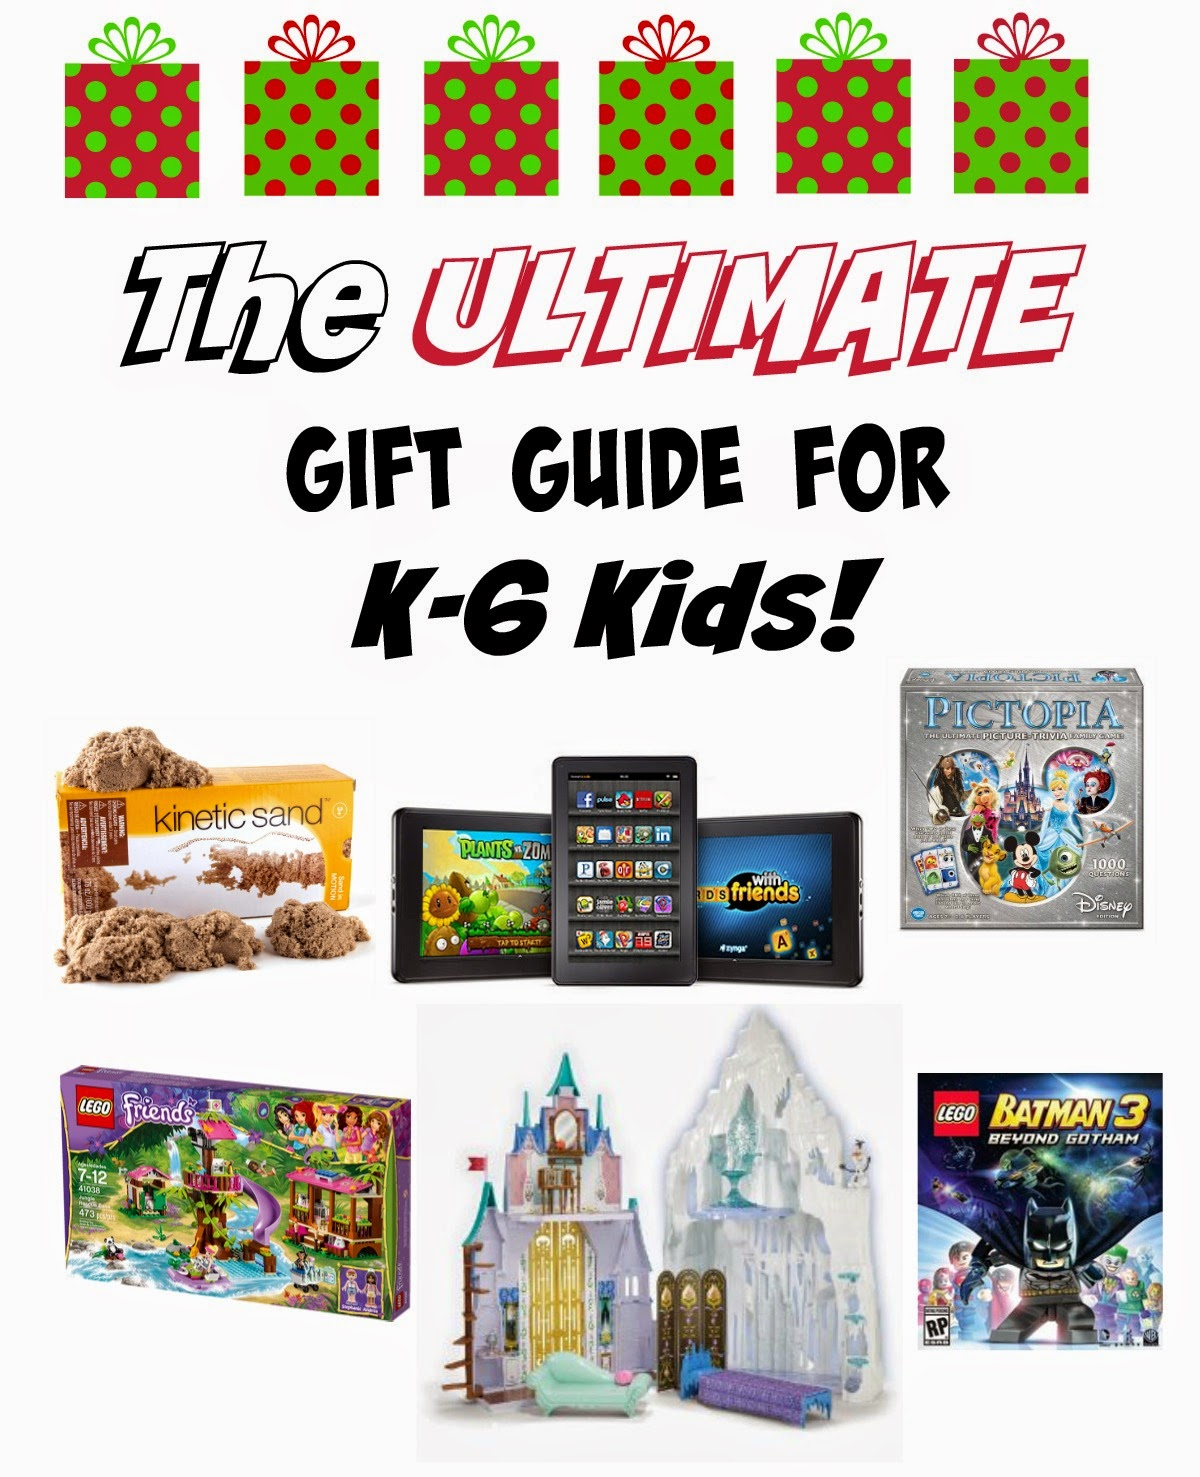 Gifts For Architects The Ultimate Guide: ULTIMATE Gift Guide For Elementary School Kids